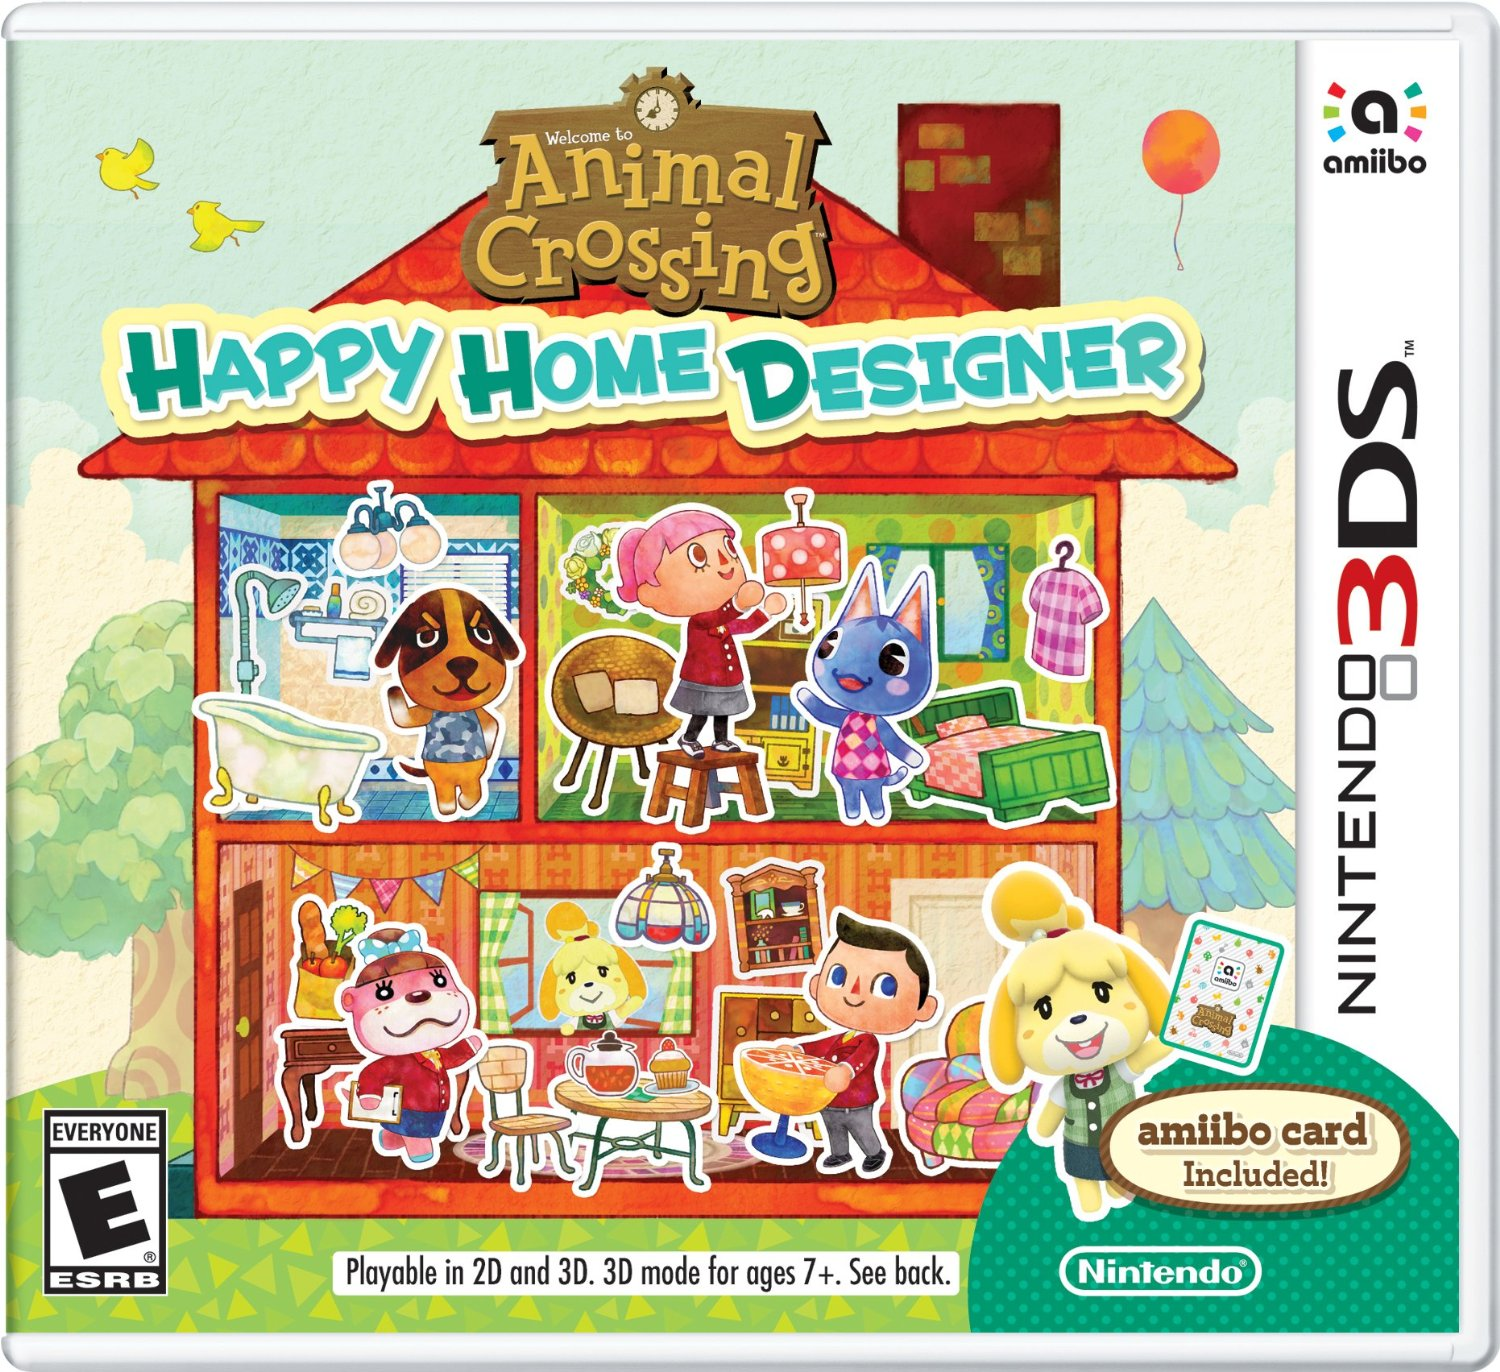 Animal Crossing: Happy Home Designer for $20 at Amazon and Best Buy - Nintendo Everything